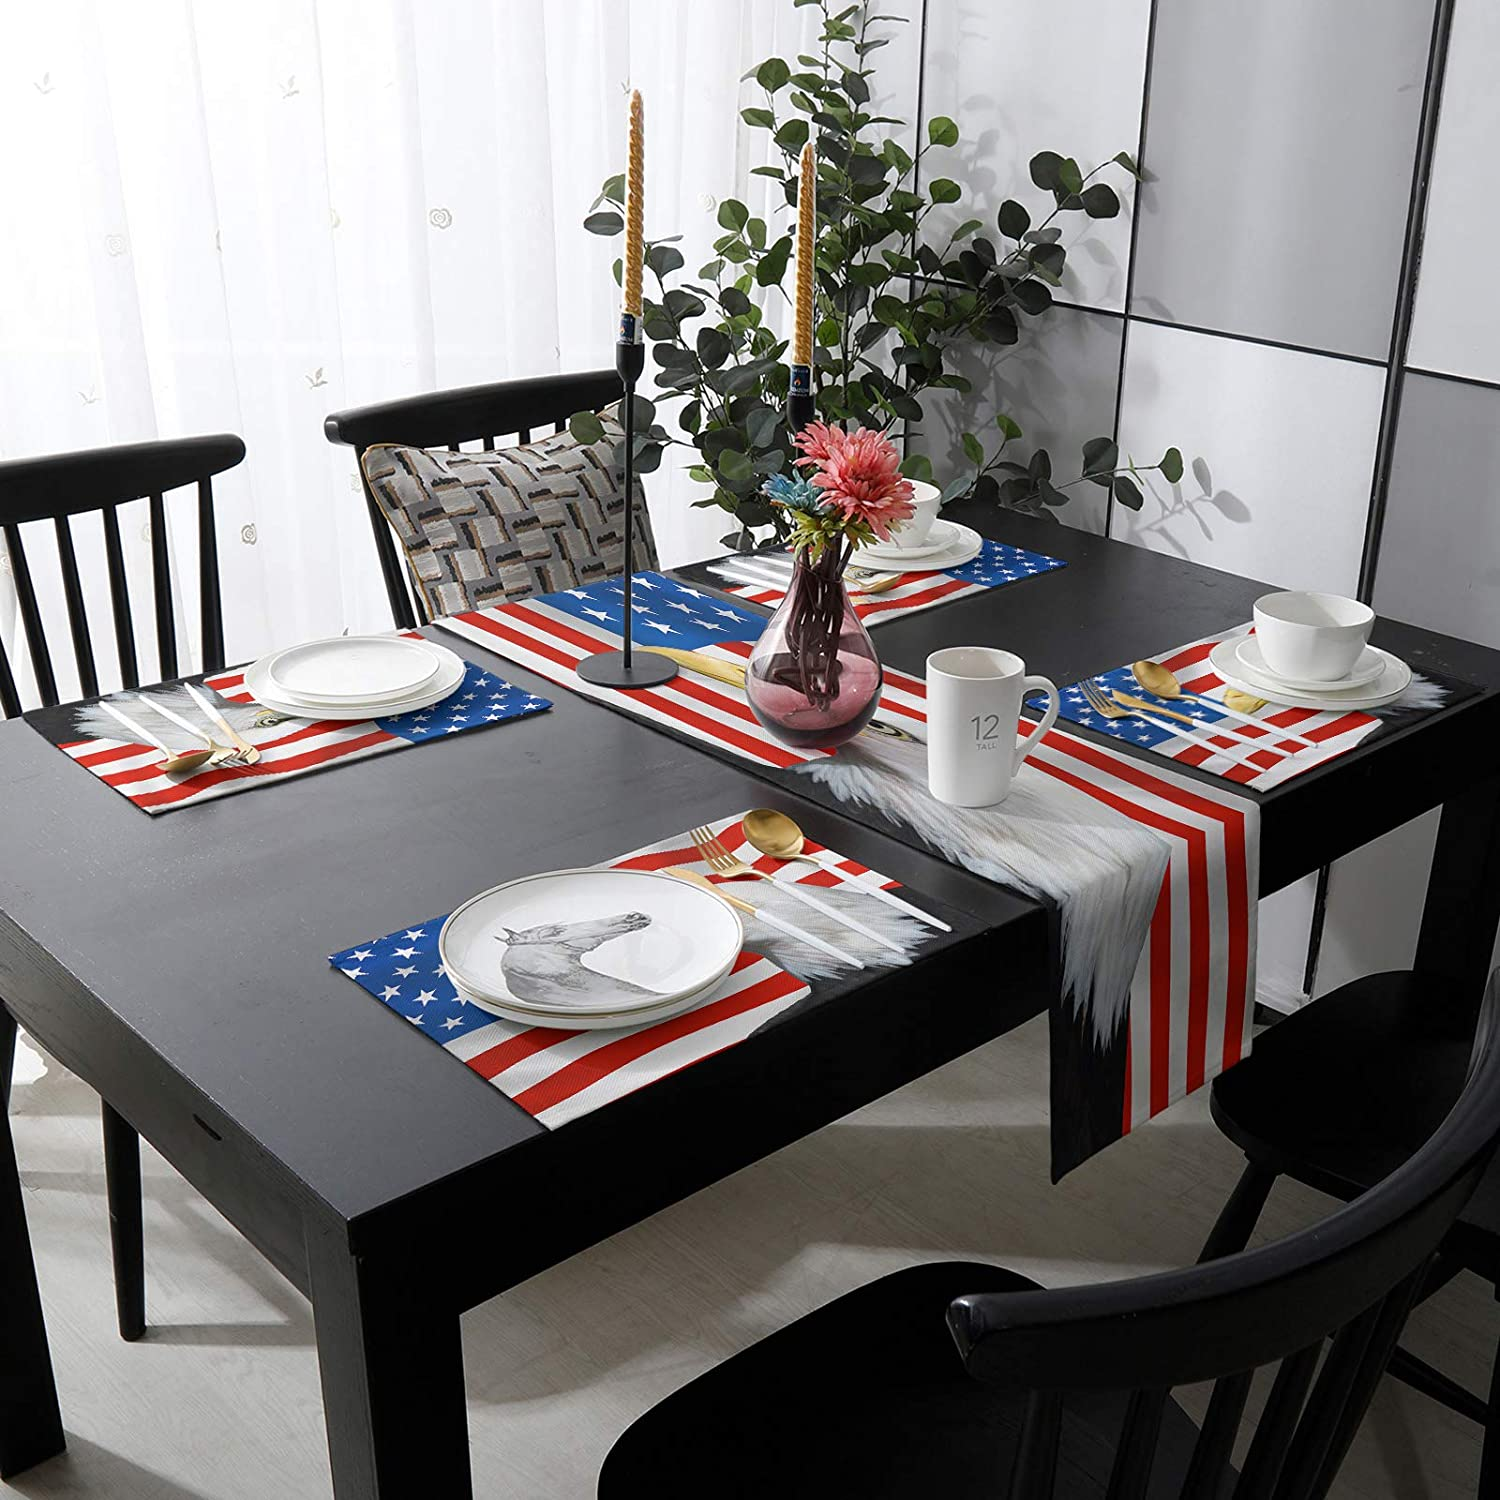 Womenfocus sold out Outdoor Table Runner and online shopping Placemats 6 Kitchen Heat-Pr